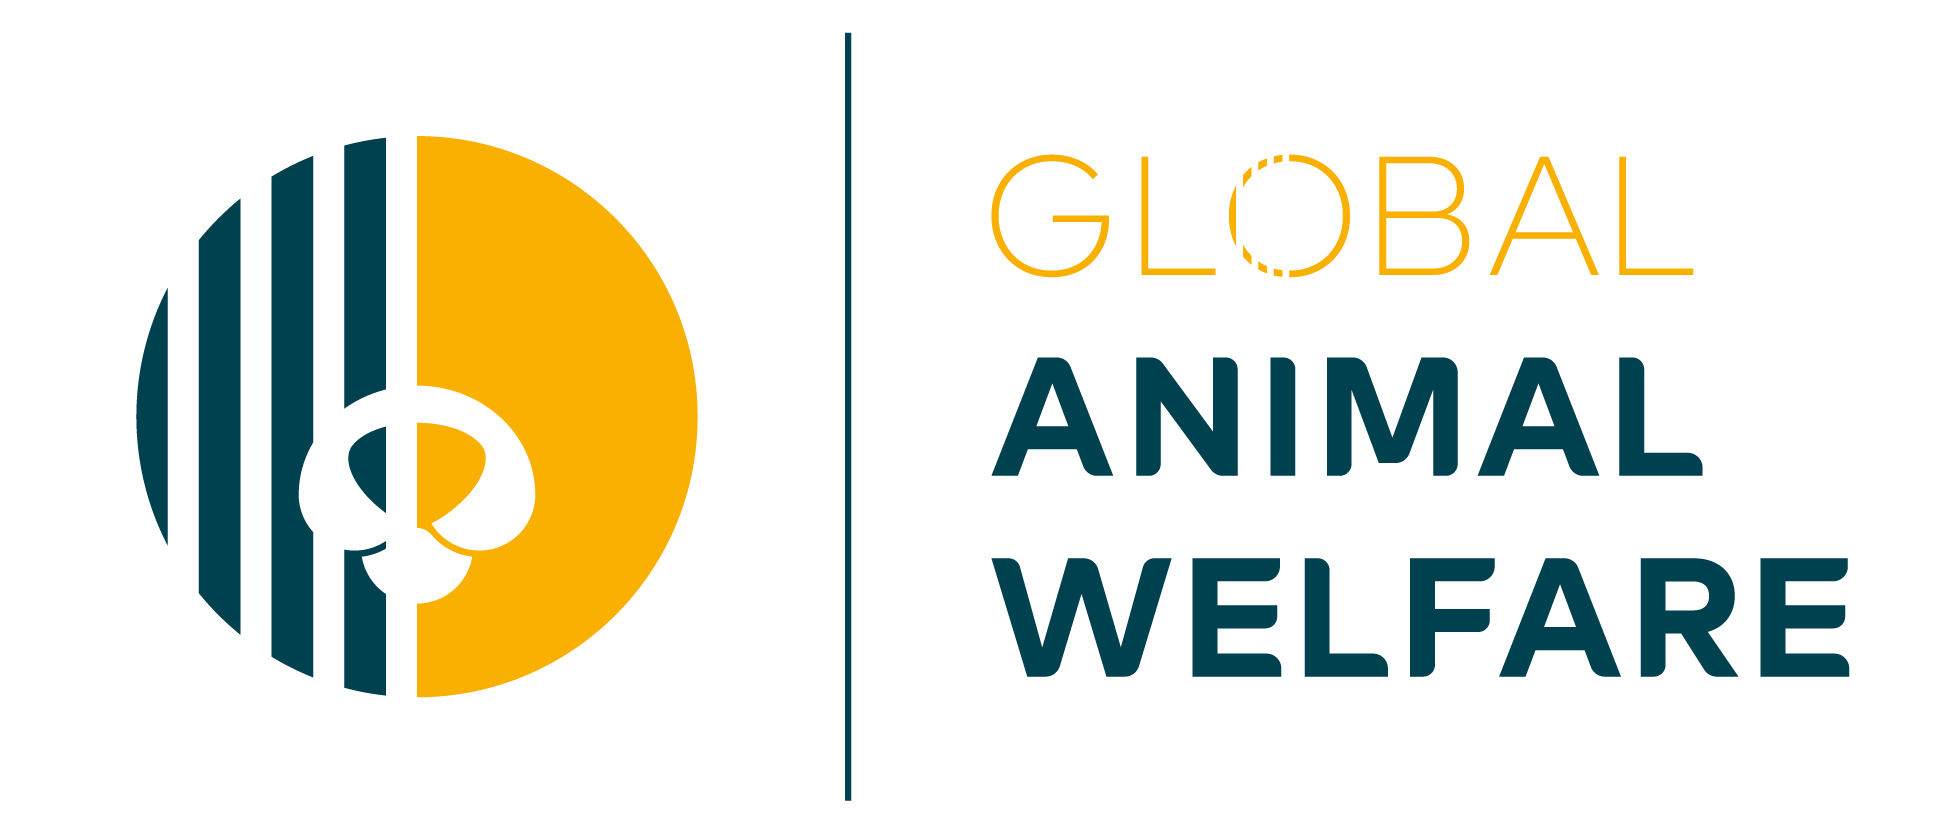 Global Animal Welfare